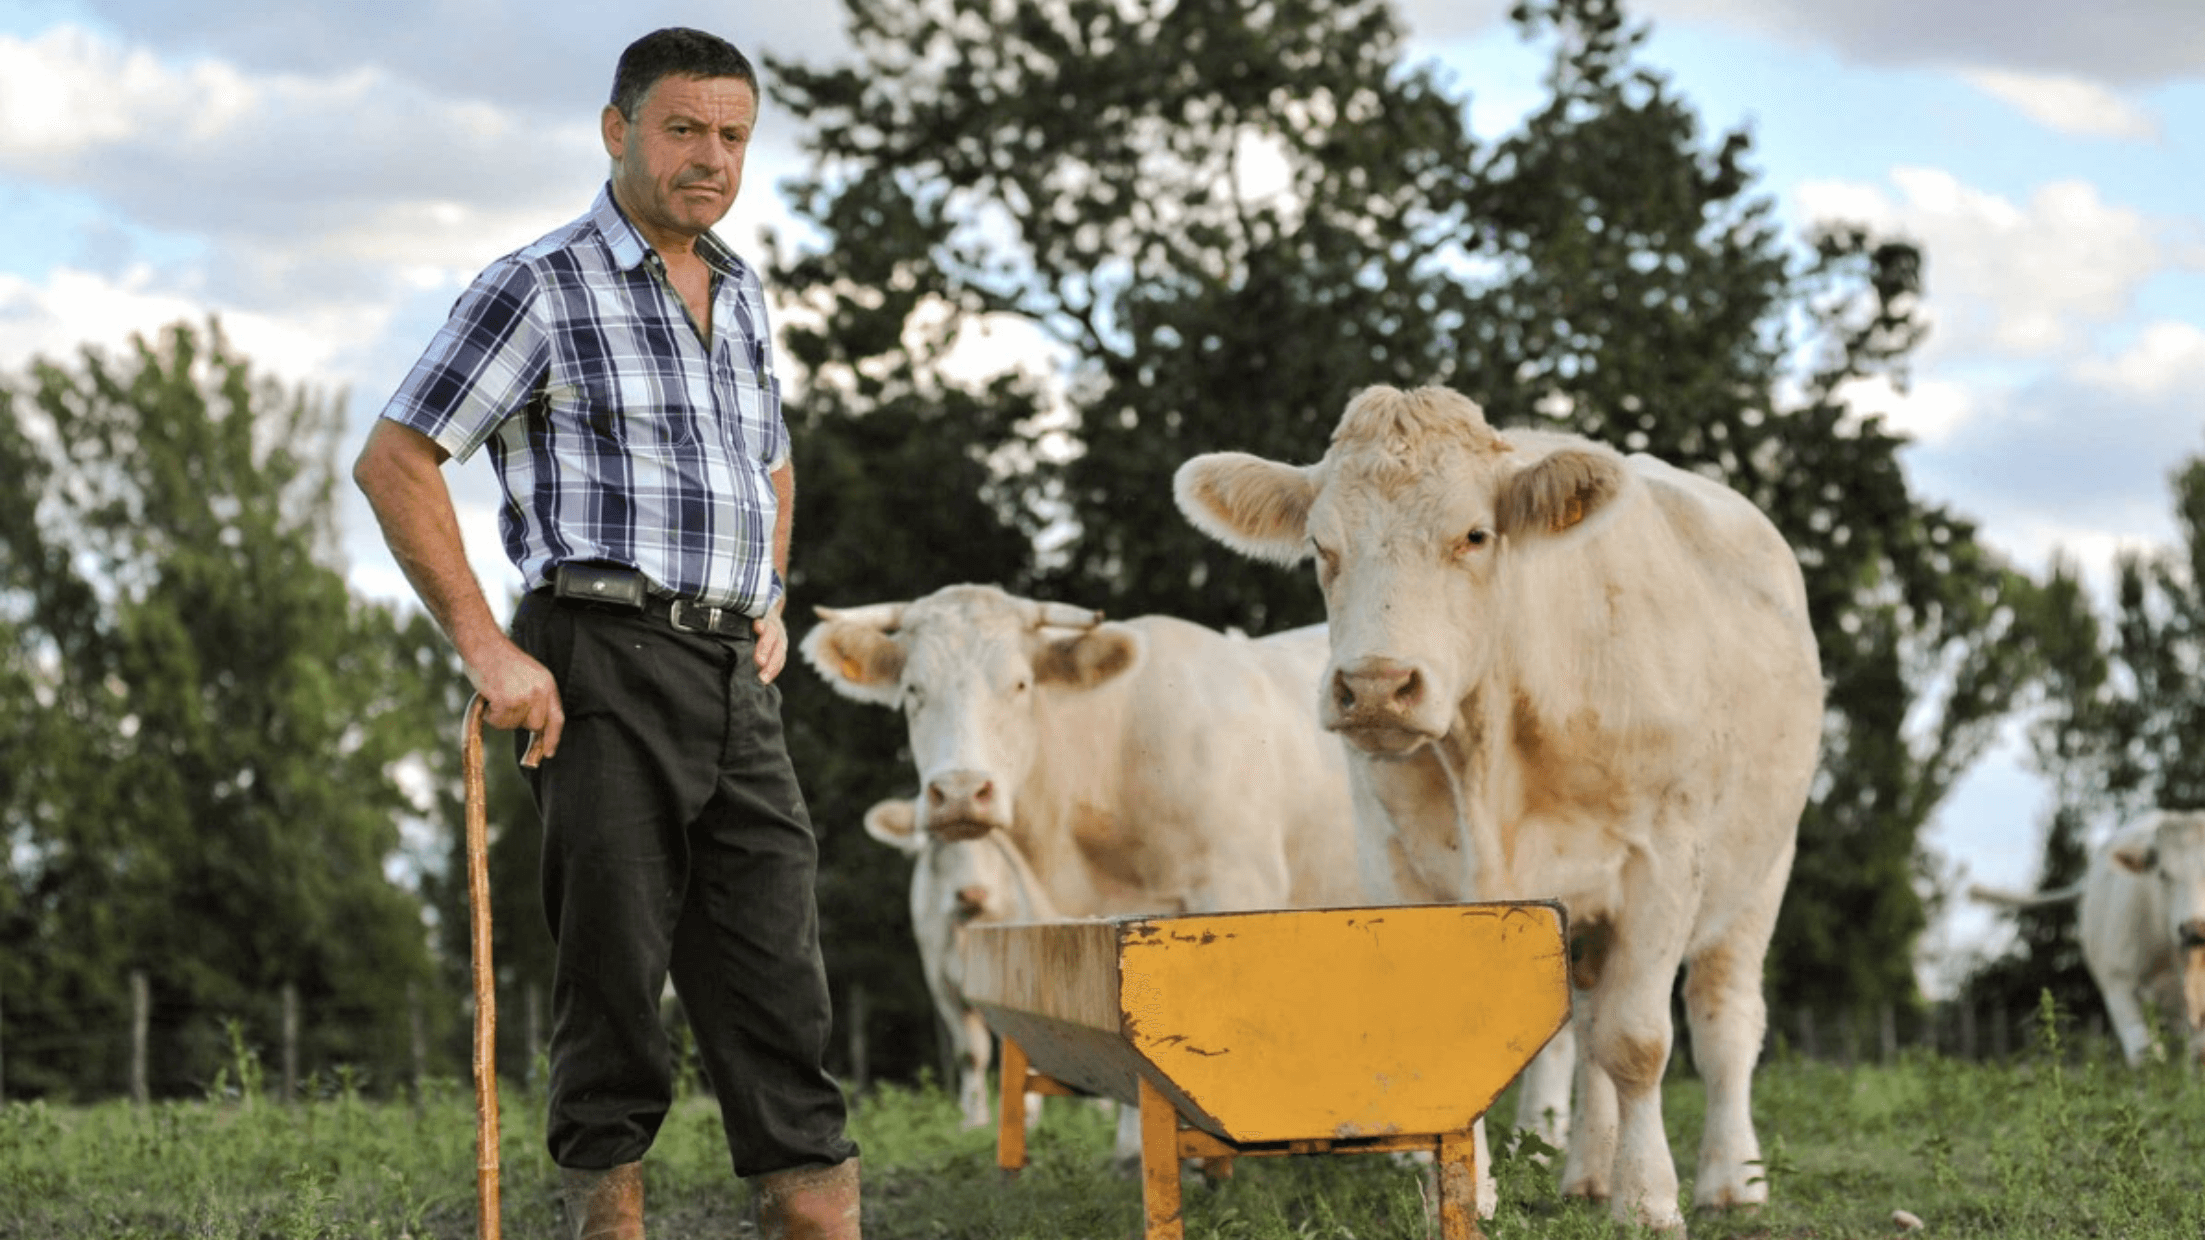 60% of Scottish Dairy Farmers Say Industry Is In Full Decline